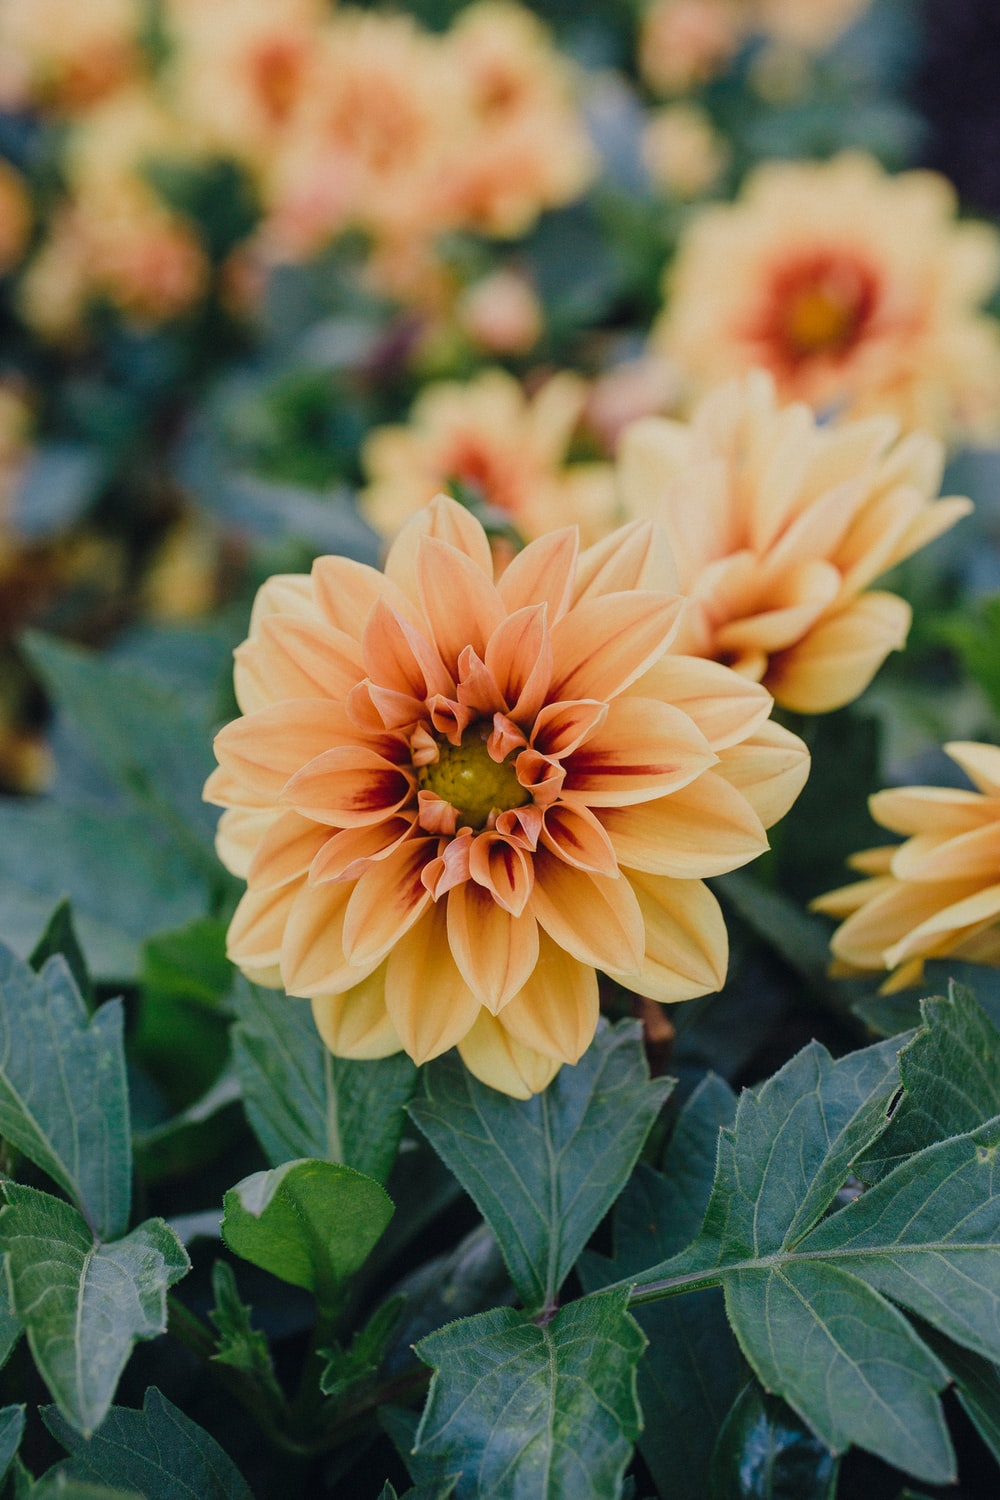 Dahlia pictures download free images on unsplash selective focus photograph of yellow petaled flower izmirmasajfo